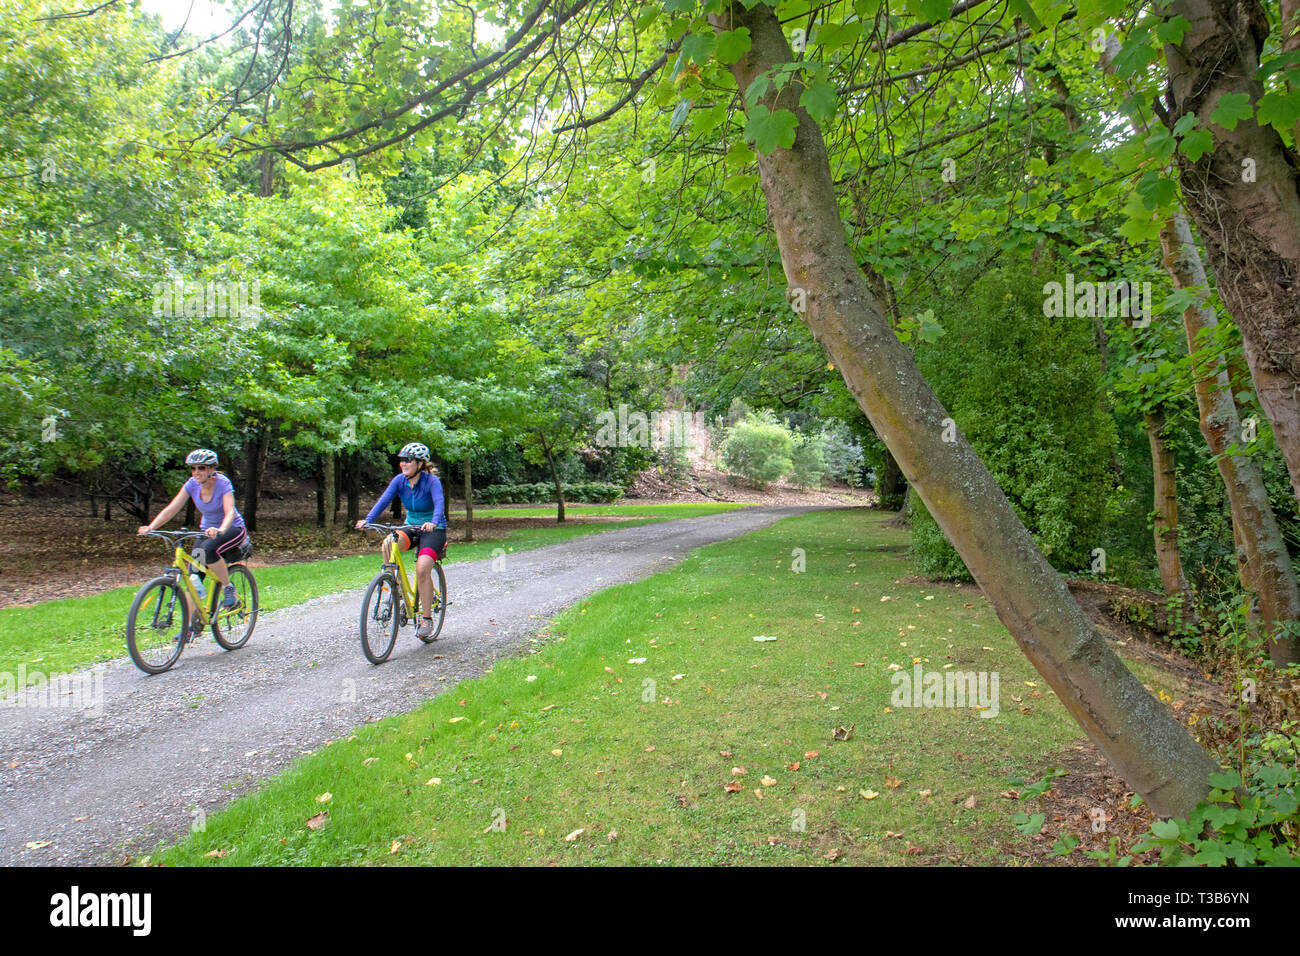 Cyclists in Oamaru Public Gardens, one of the final stretches of the Alps 2 Ocean cycle trail - Stock Image